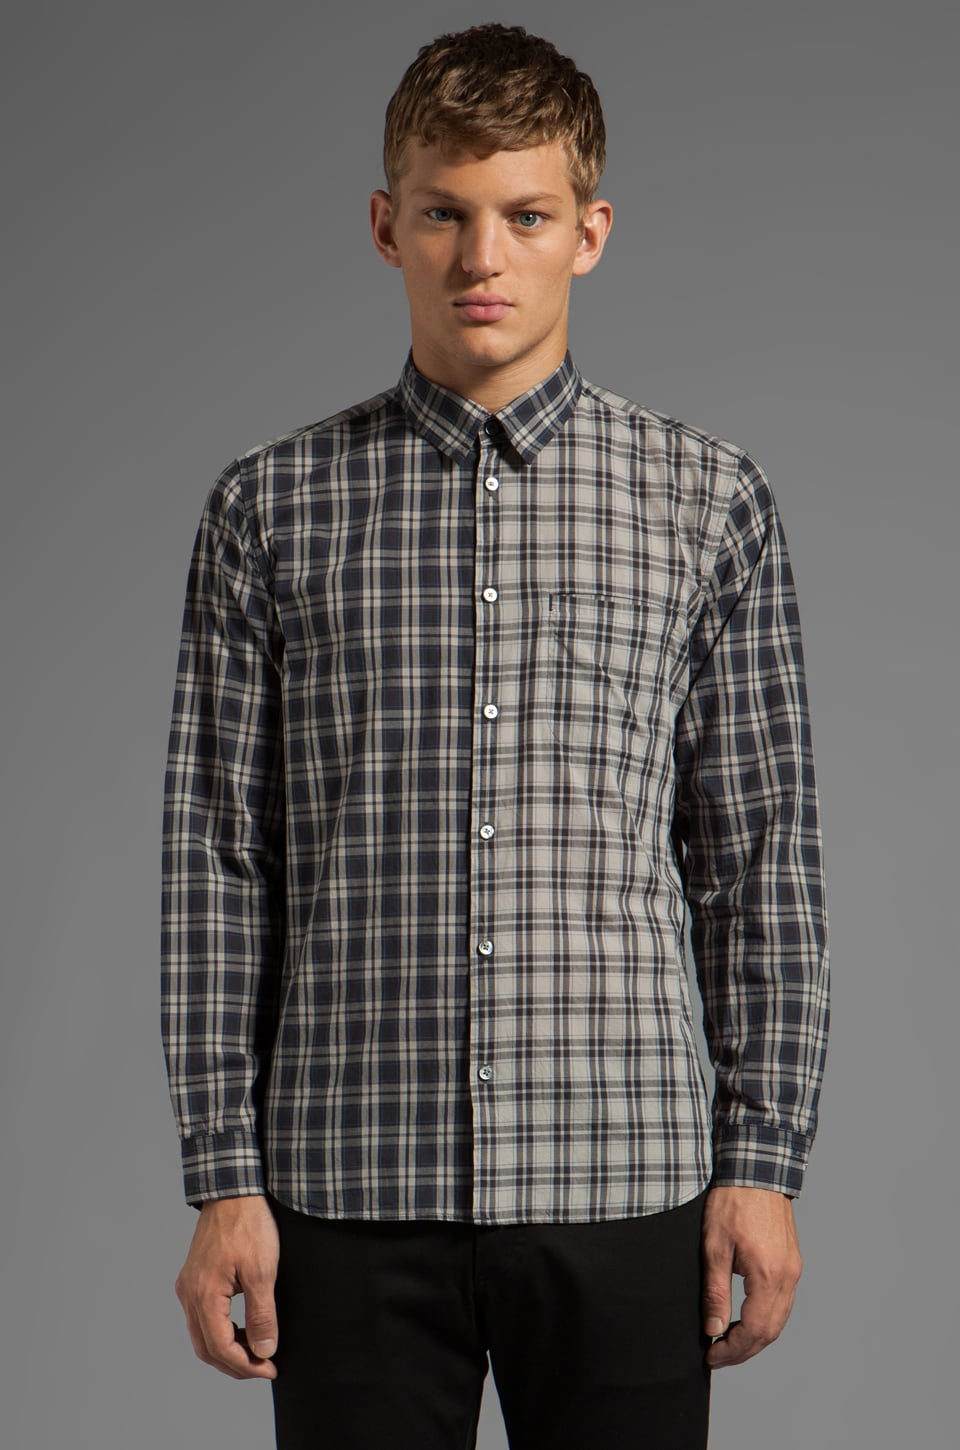 Marc by Marc Jacobs Harmony Plaid Button Down in Blue Graphite Multi